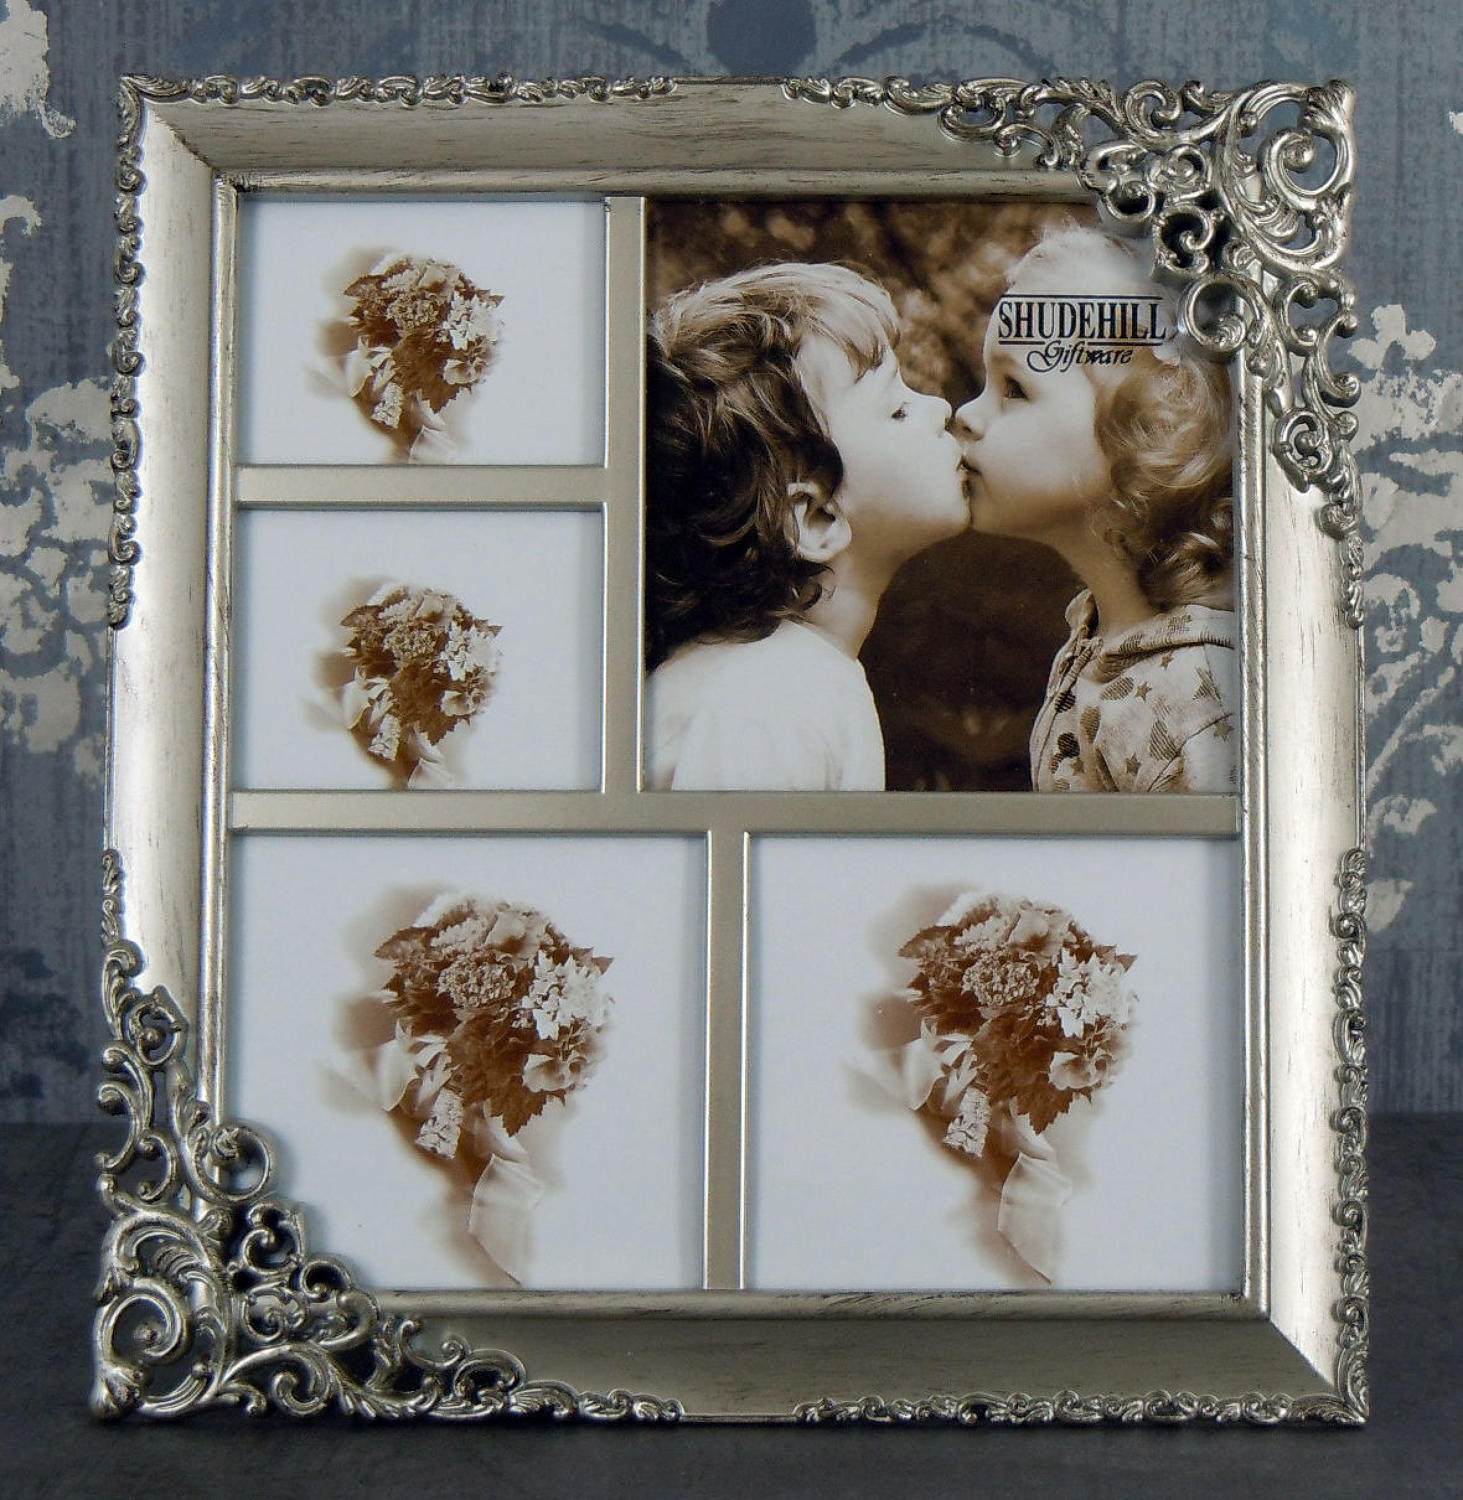 Brushed Steel effect multi photo frame